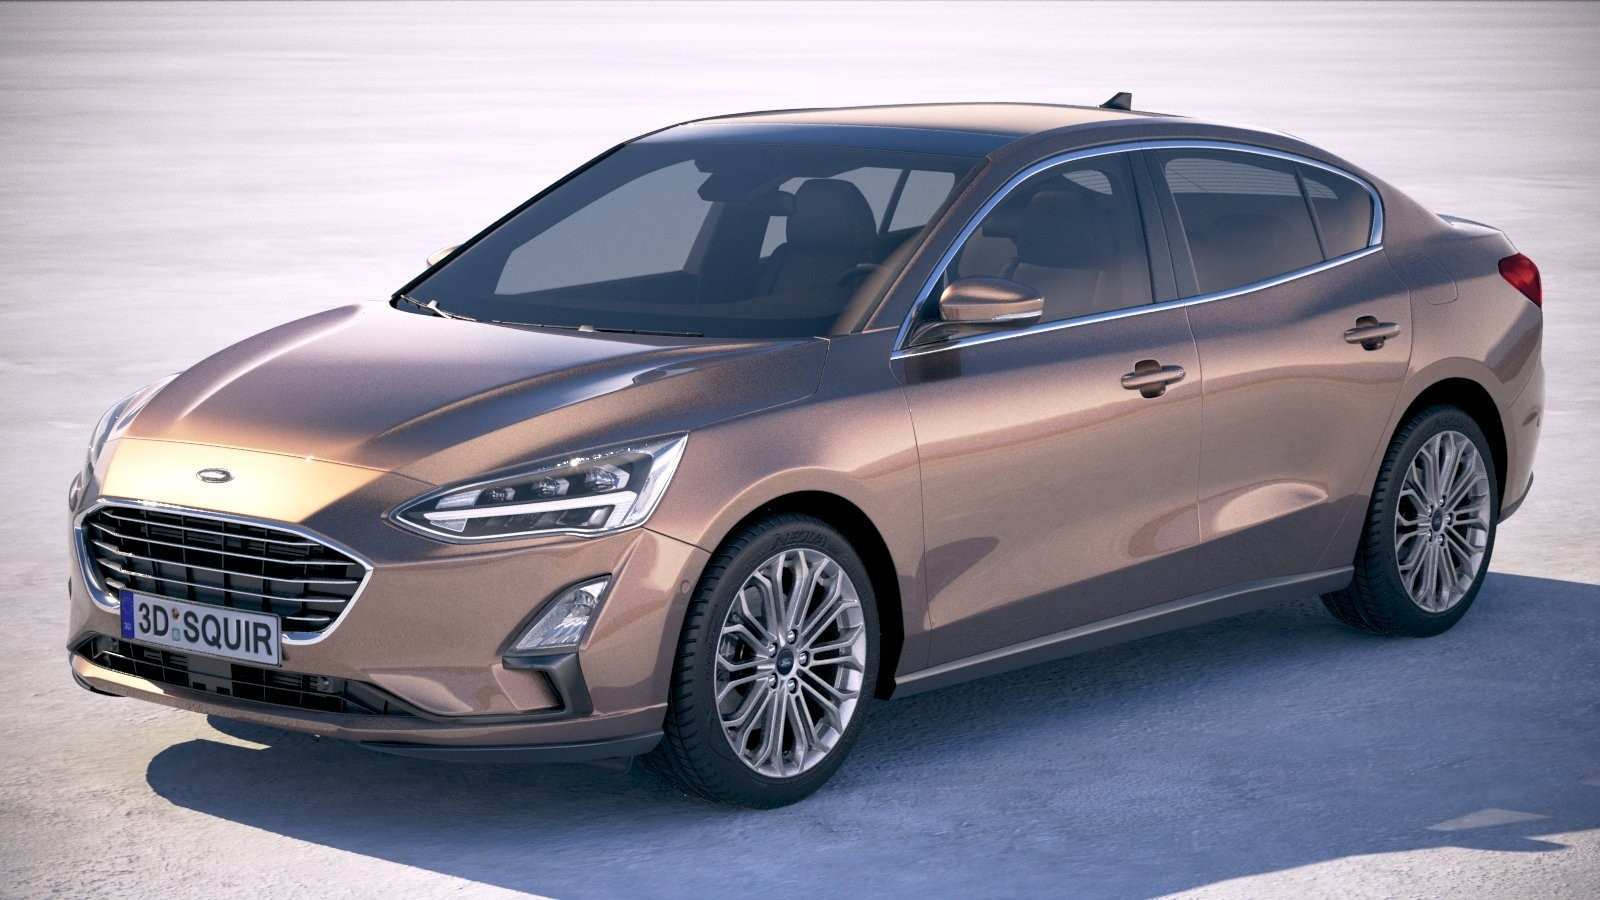 84 The Best 2019 Ford Focus Sedan Price